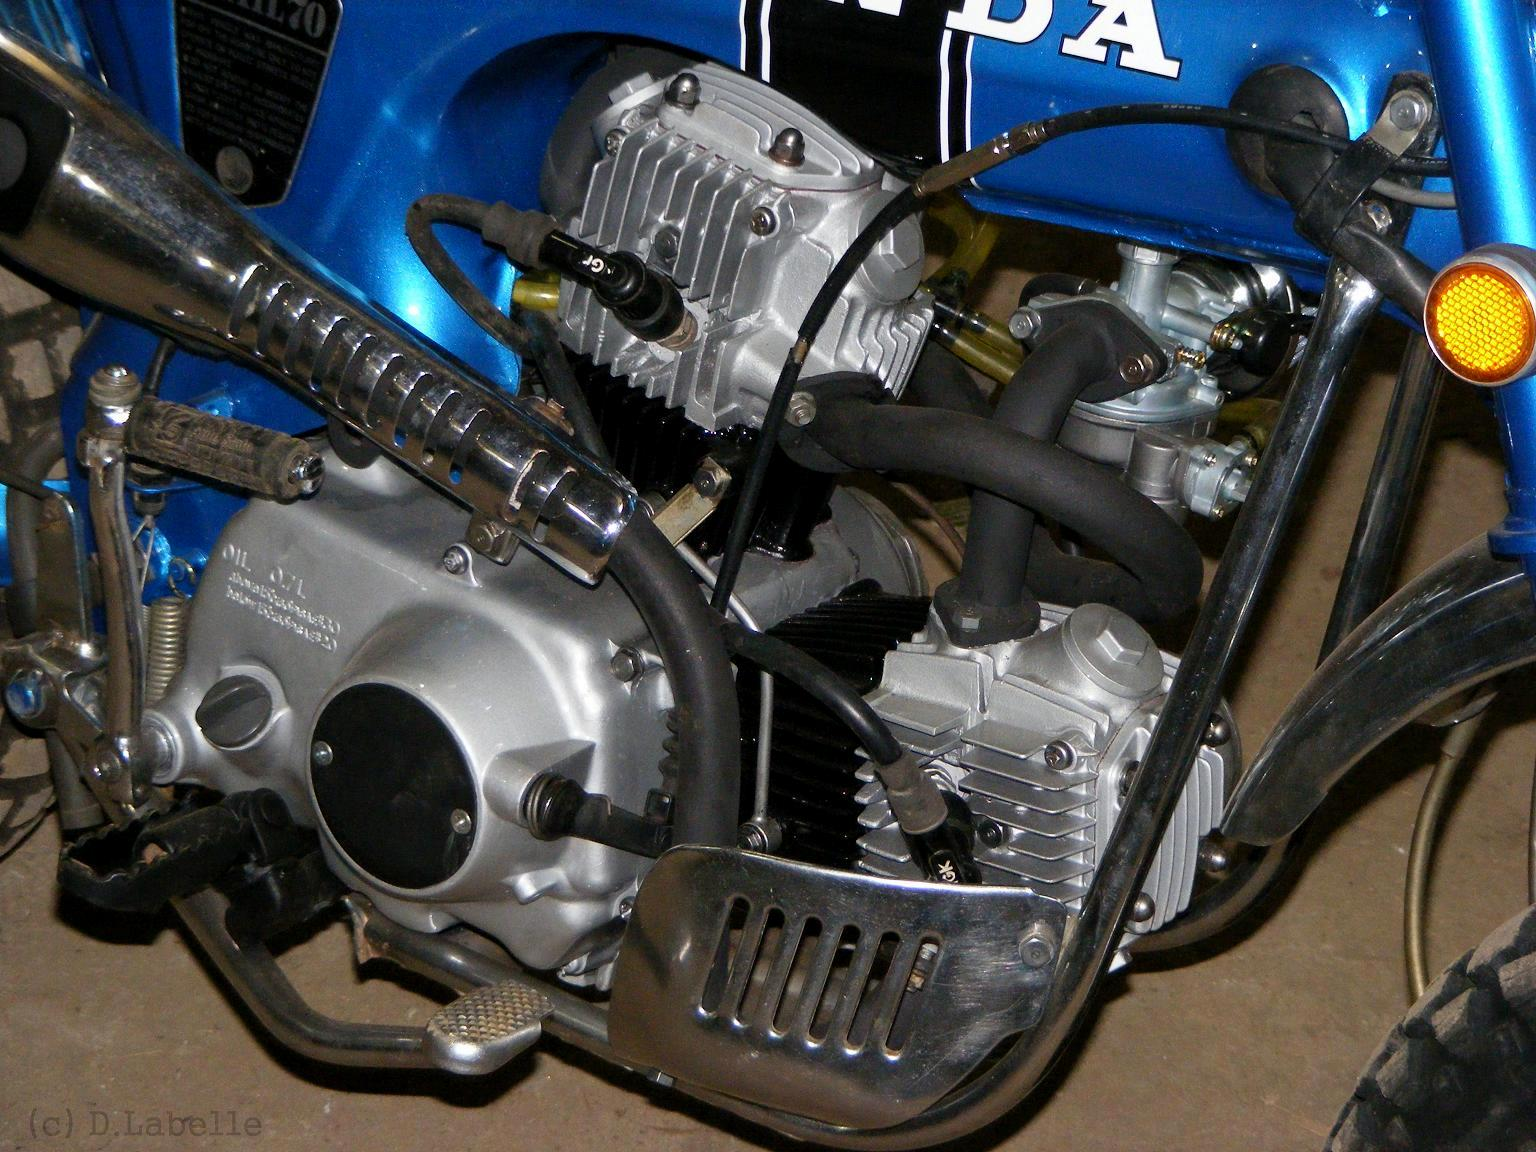 Harley Davidson Twin Cam Engine Diagram Parts List Wiring On Motorcycle Honda V Engines Get Free Evo